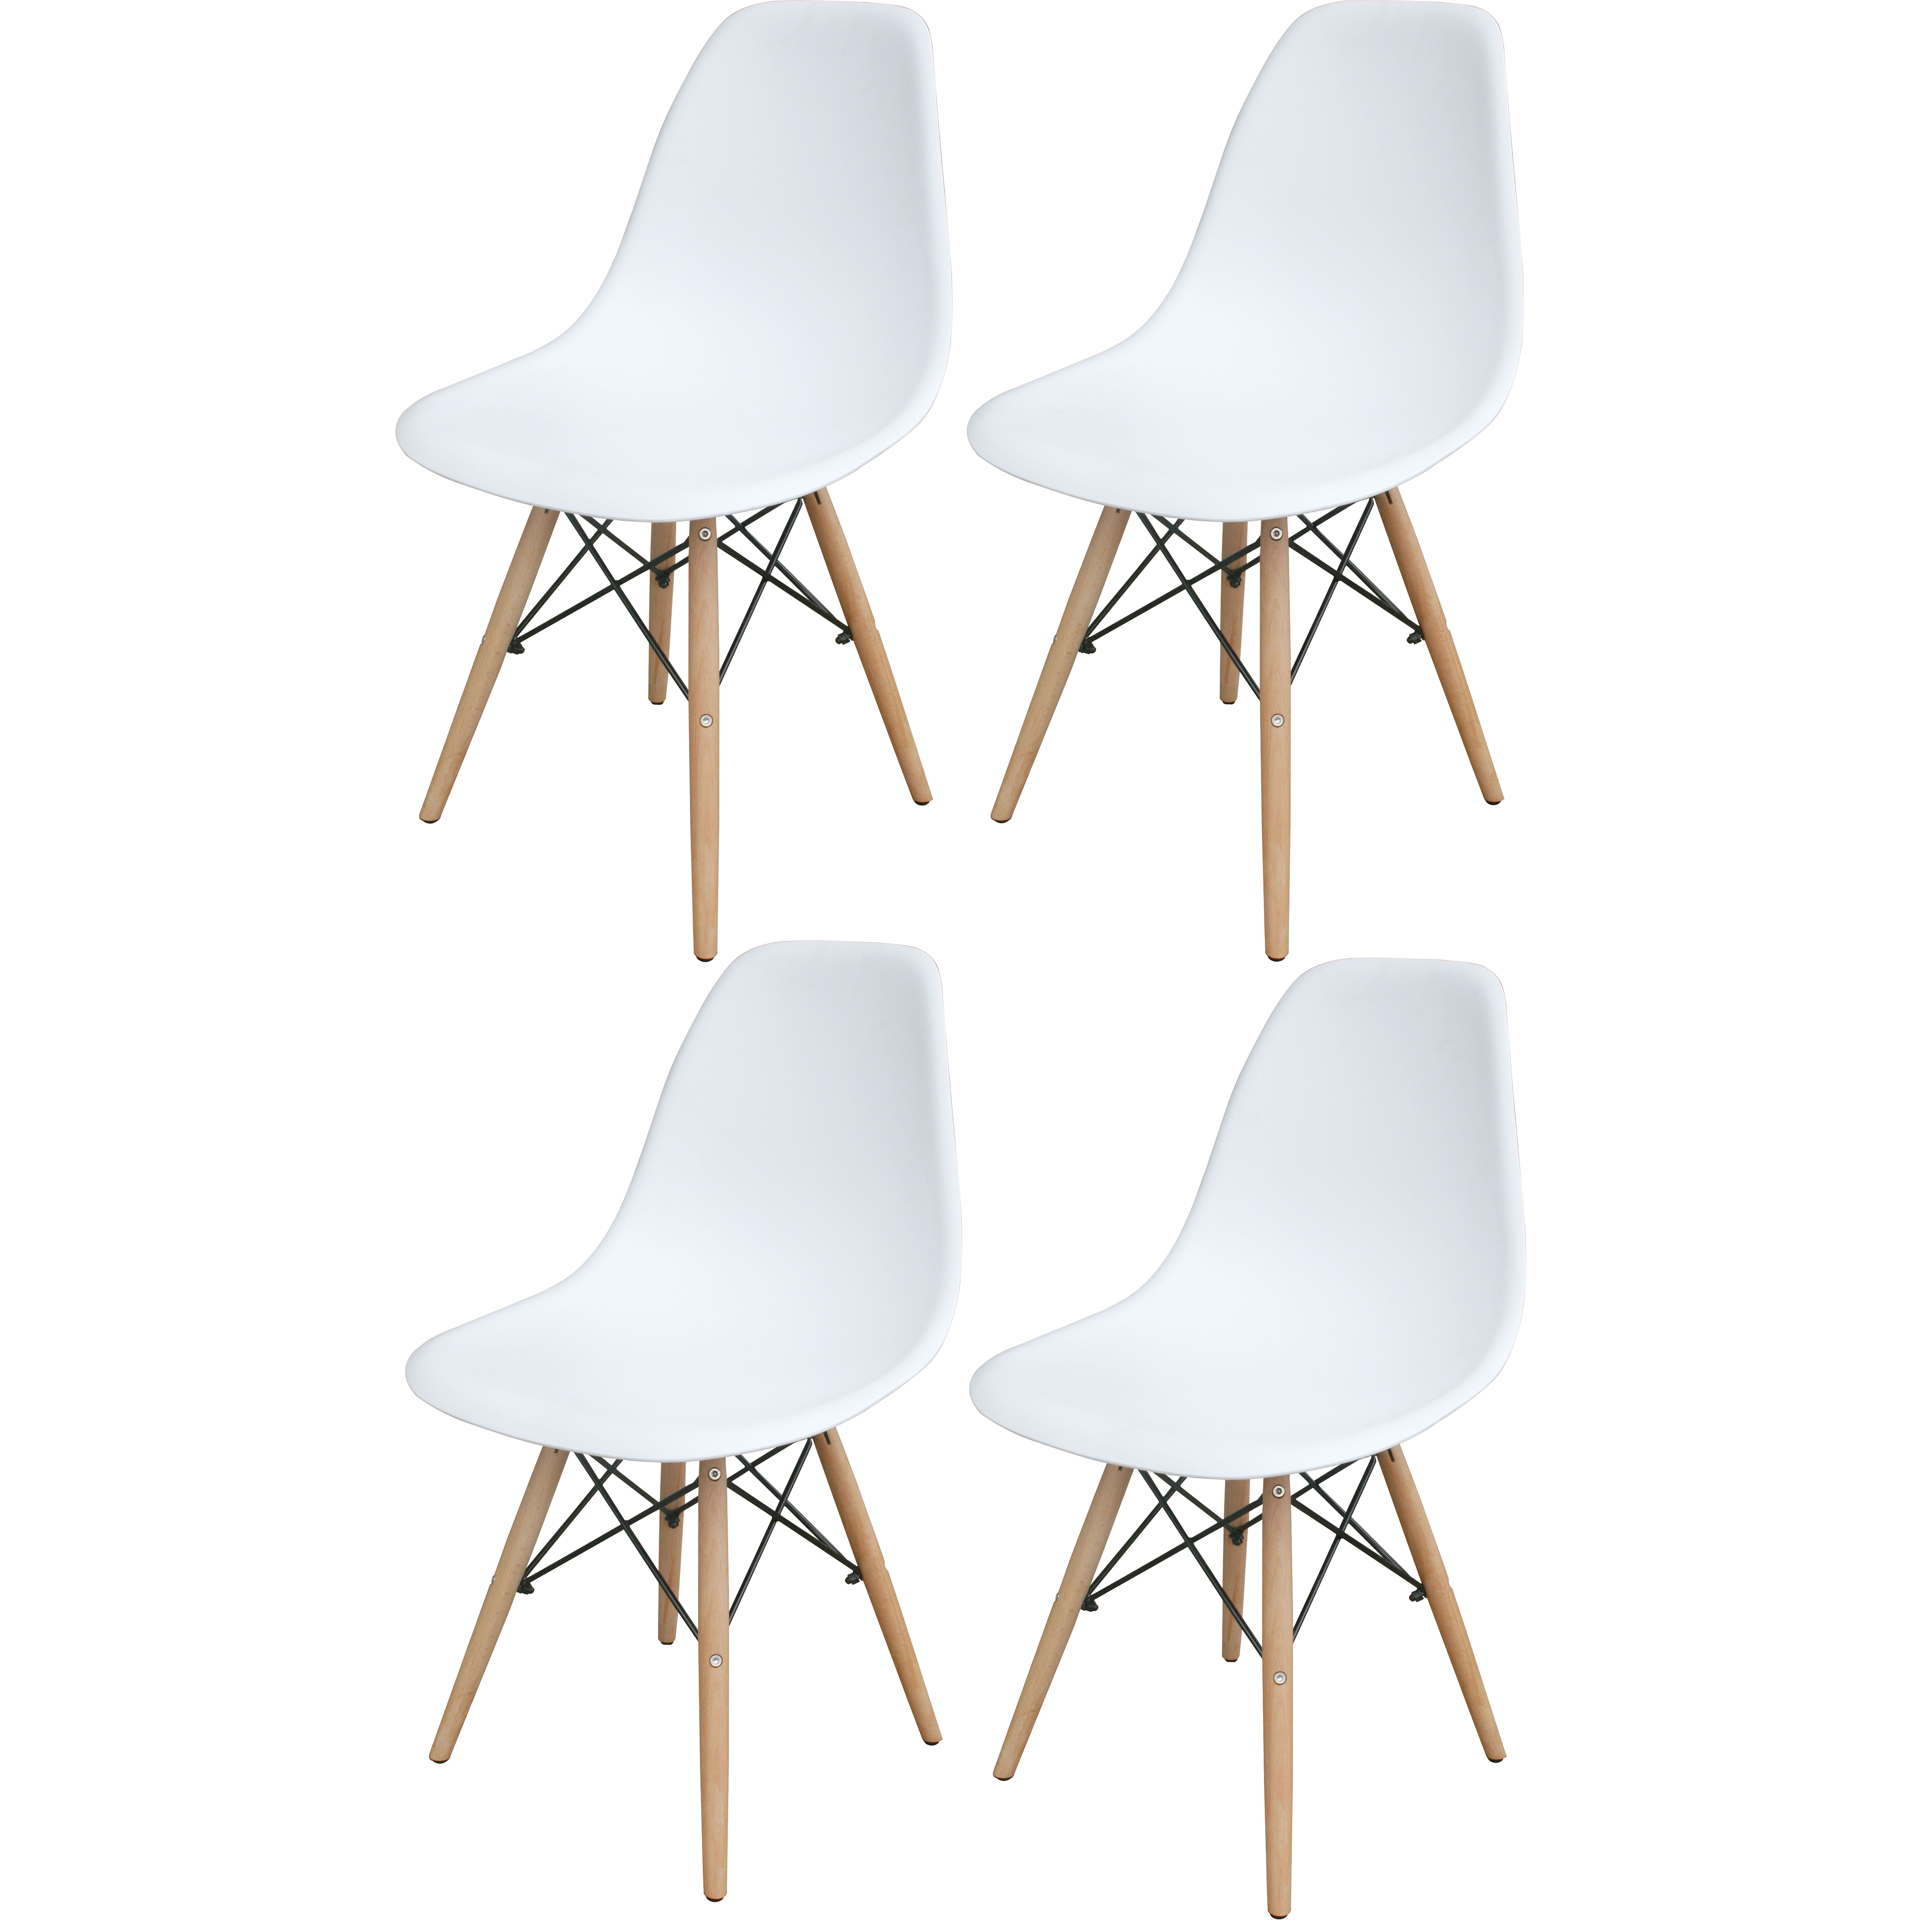 White Wooden Leg Accent Chairs - 4 Piece Set